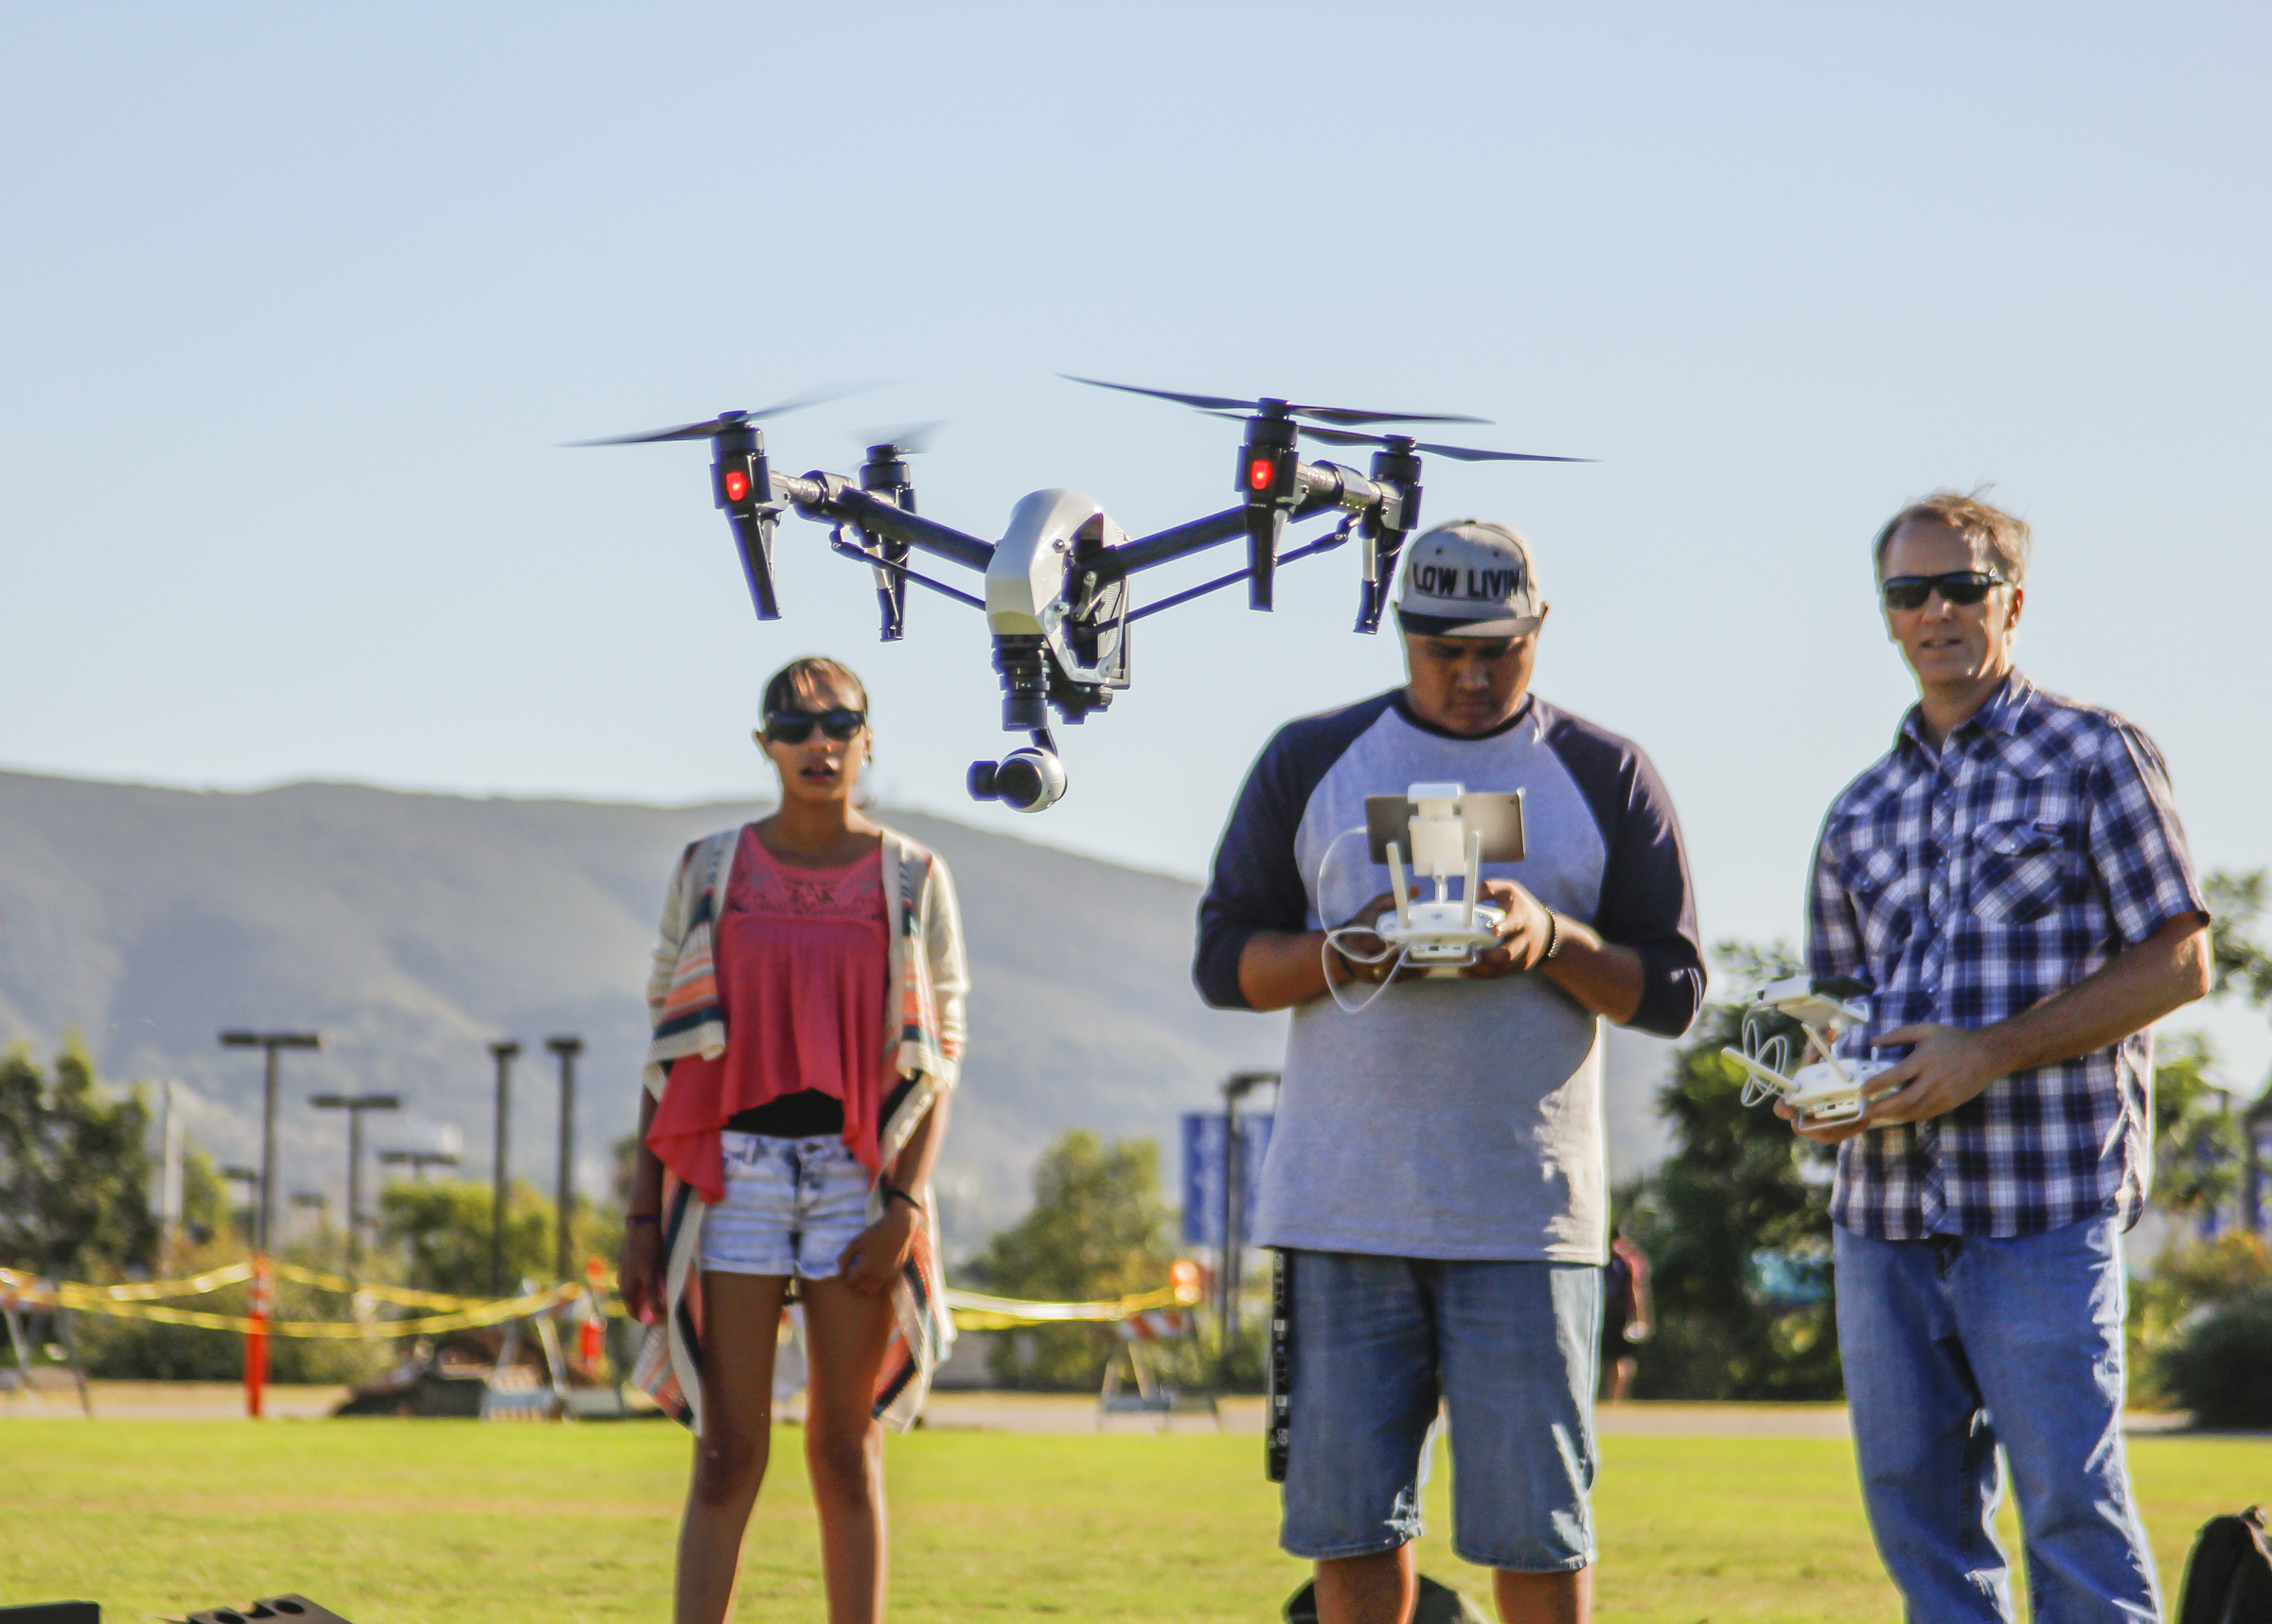 Victor Ramirez (C)is midflight of his U.A.V DJI-S900 along side of Professor Mark Bealo (R) and Michelle Ramierz ( L). Victor Ramirez is one of 22 students in the Digital Imaging with Drones course at the San Marcos campus. September 2015 Hanadi Cackler/ The Telescope